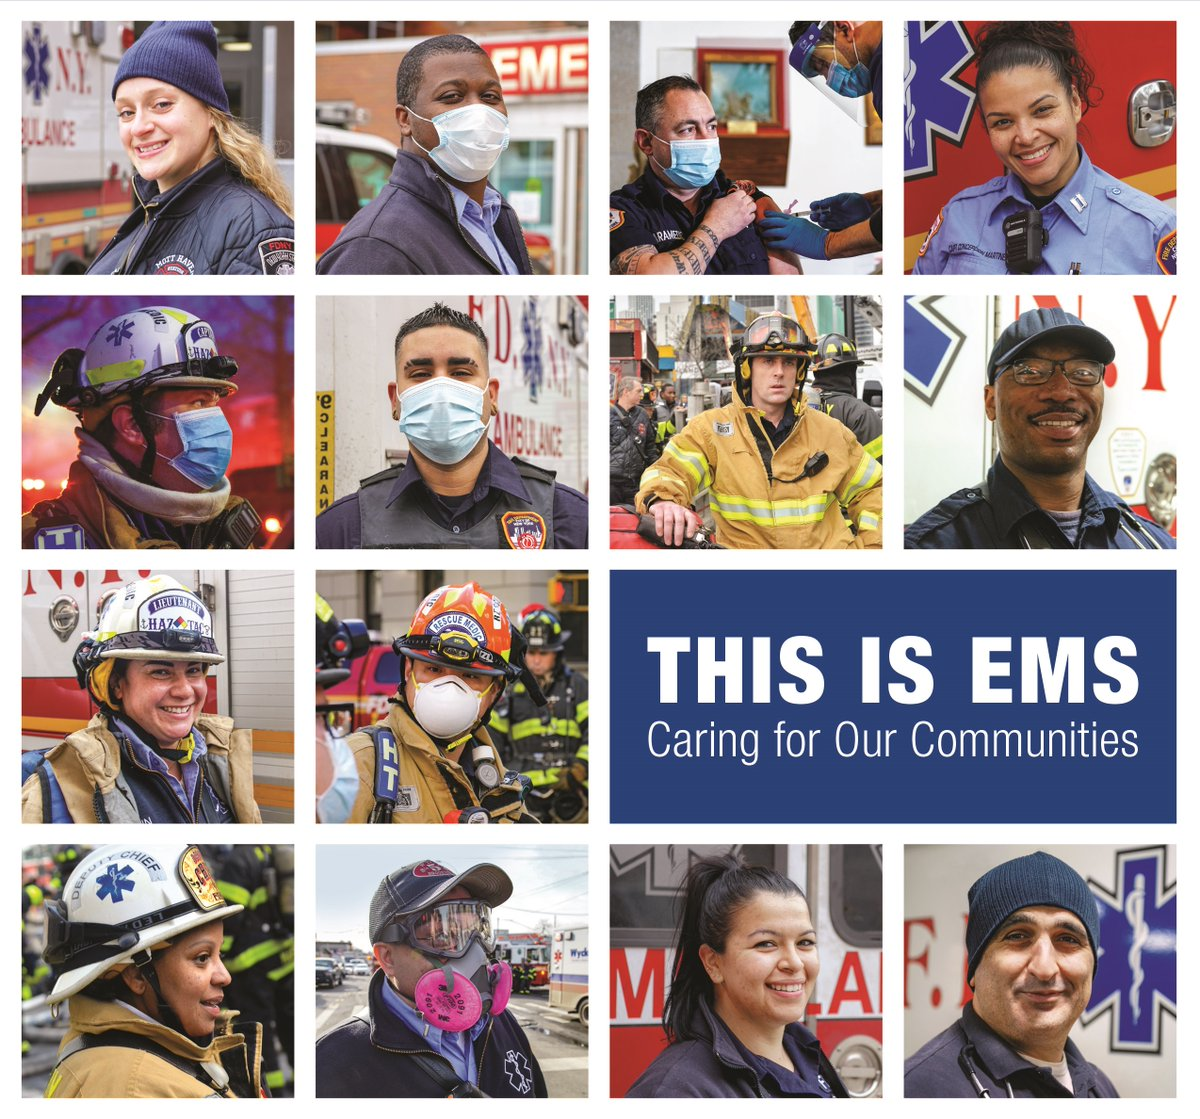 Take a moment this week to recognize the EMS practitioners hard at work in your community! 👏 👏 👏 https://t.co/1ujlIVV5my